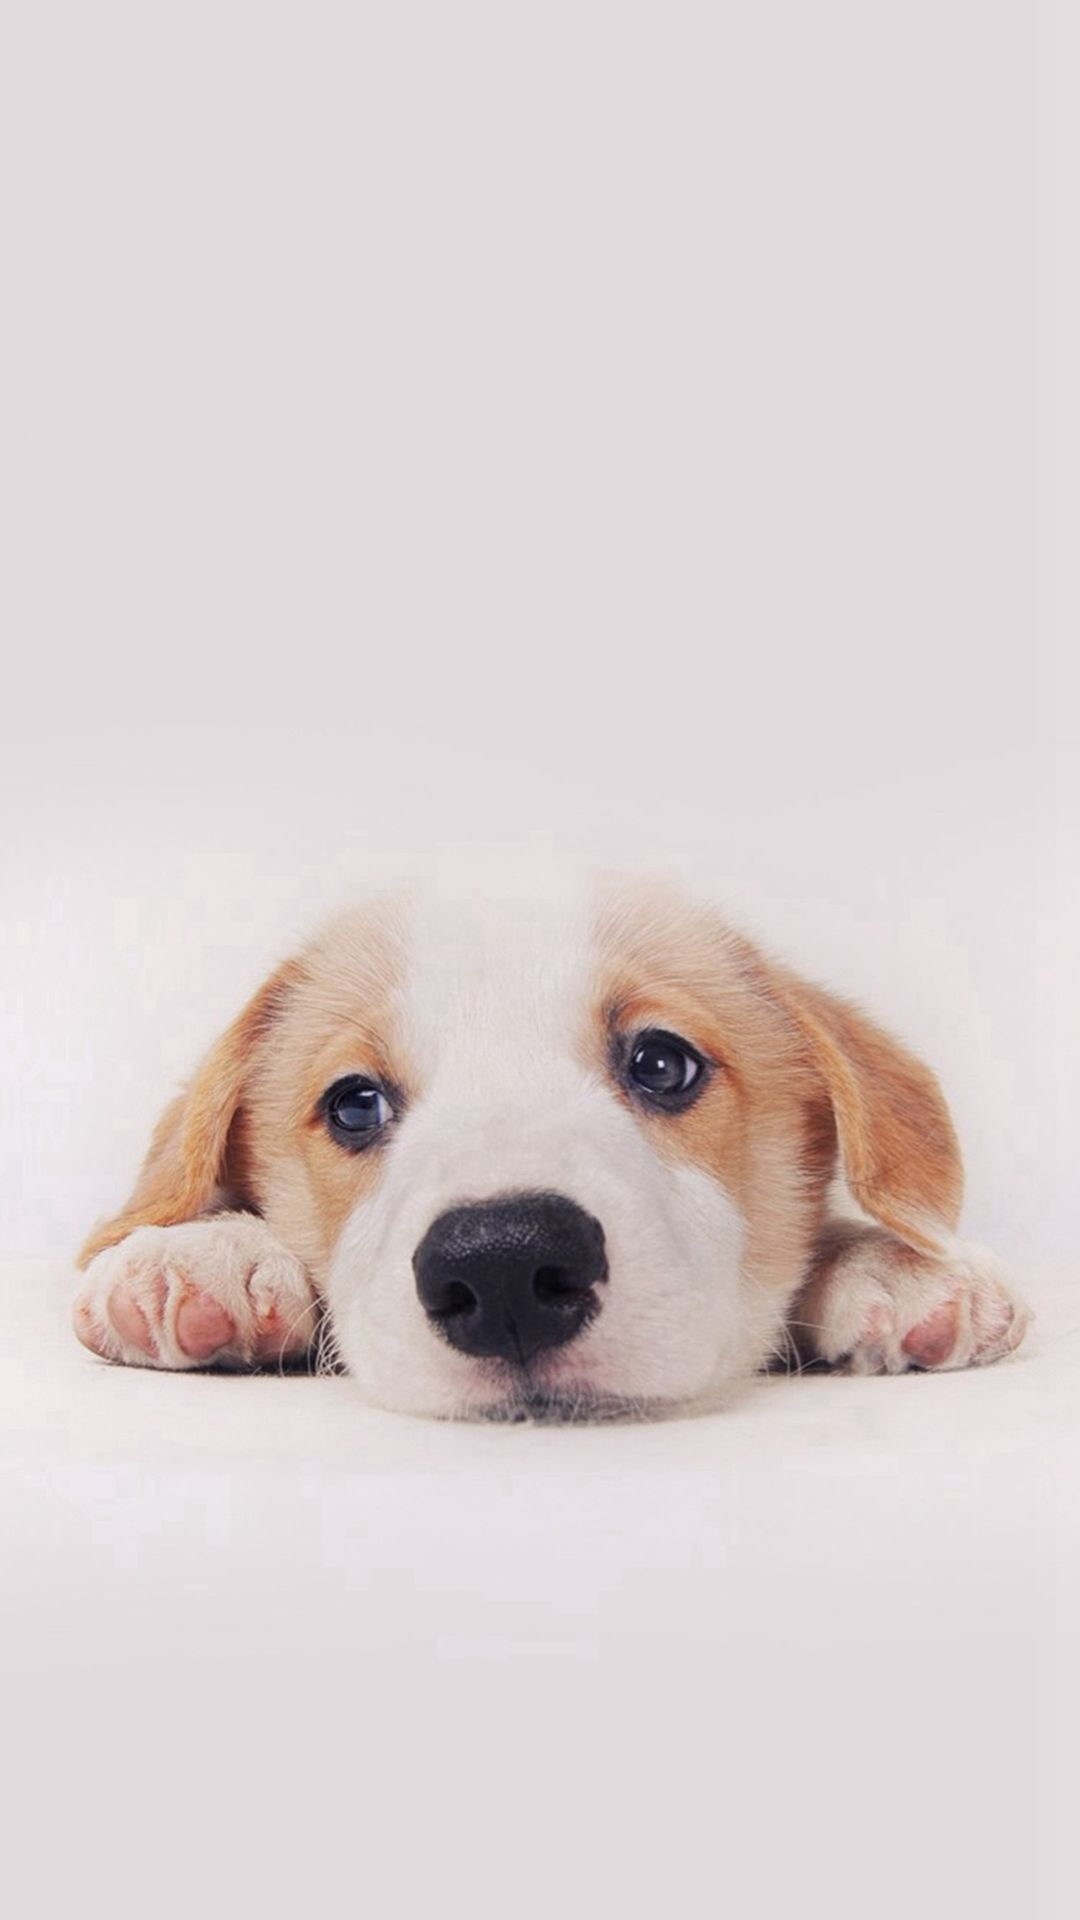 Cute Puppy Dog Pet Iphone 8 Wallpapers Cute Dog Wallpaper Dog